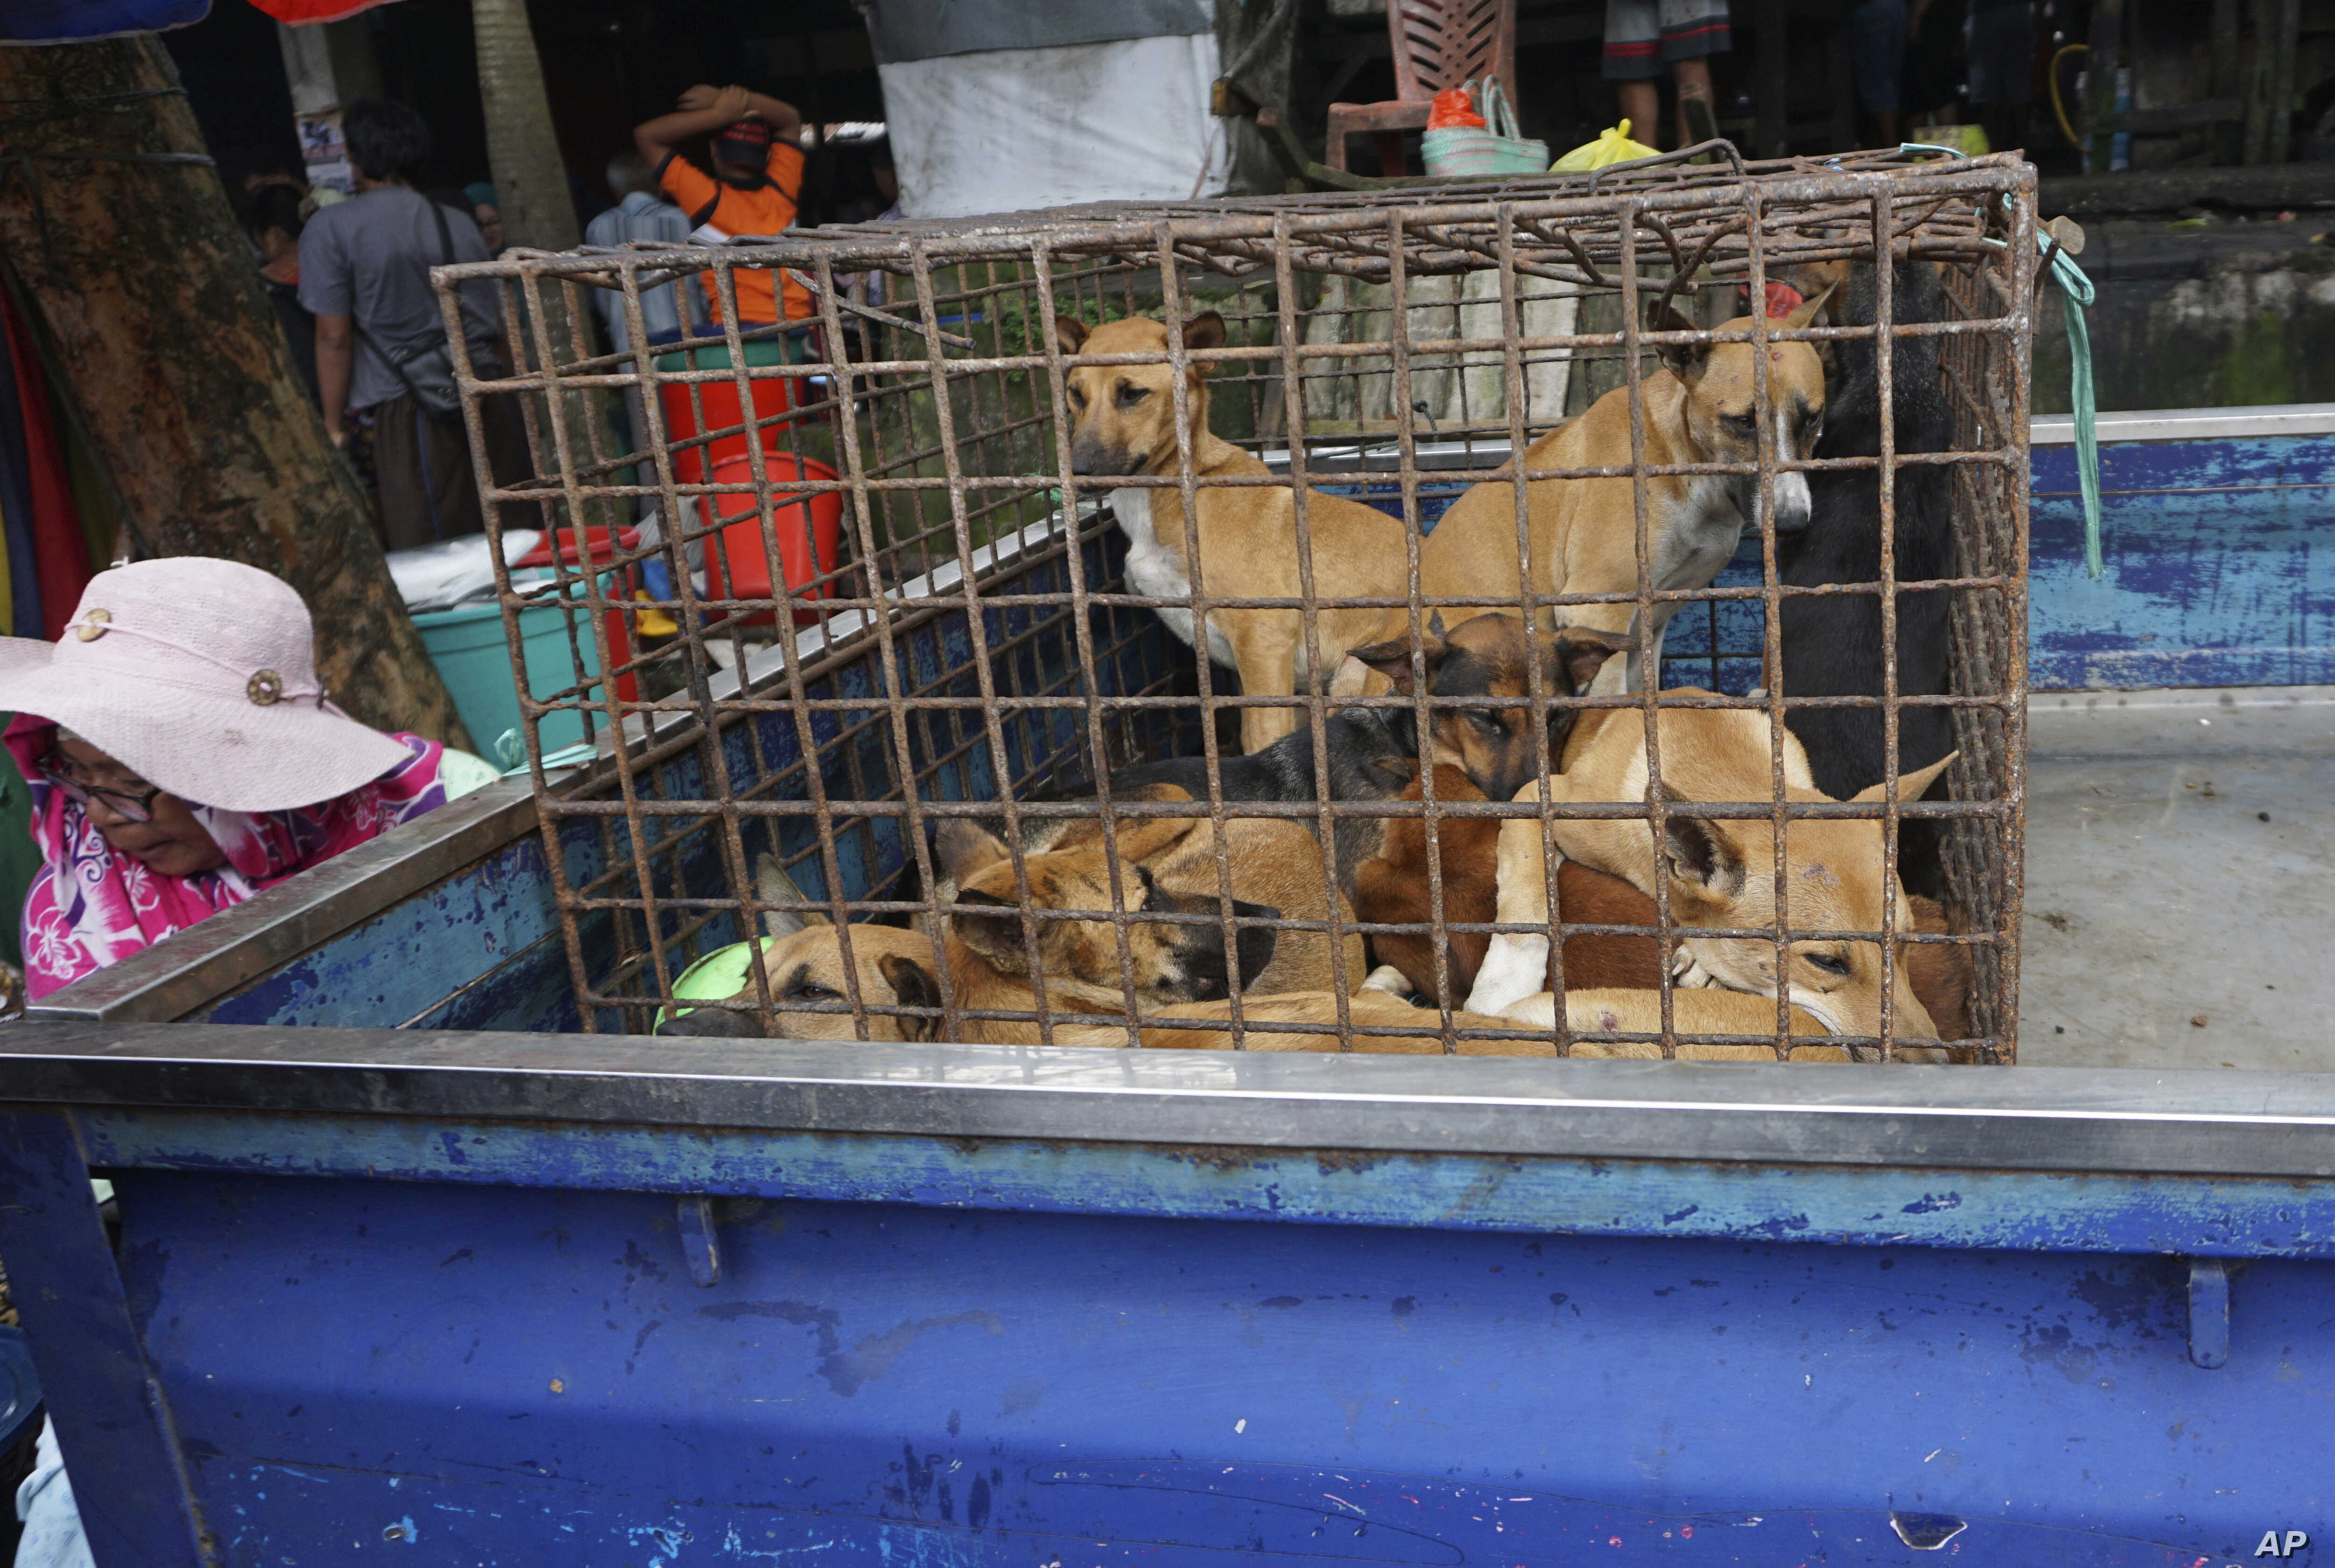 Stars Urge Indonesia to Ban 'Brutal' Trade in Dog, Cat Meat | Voice